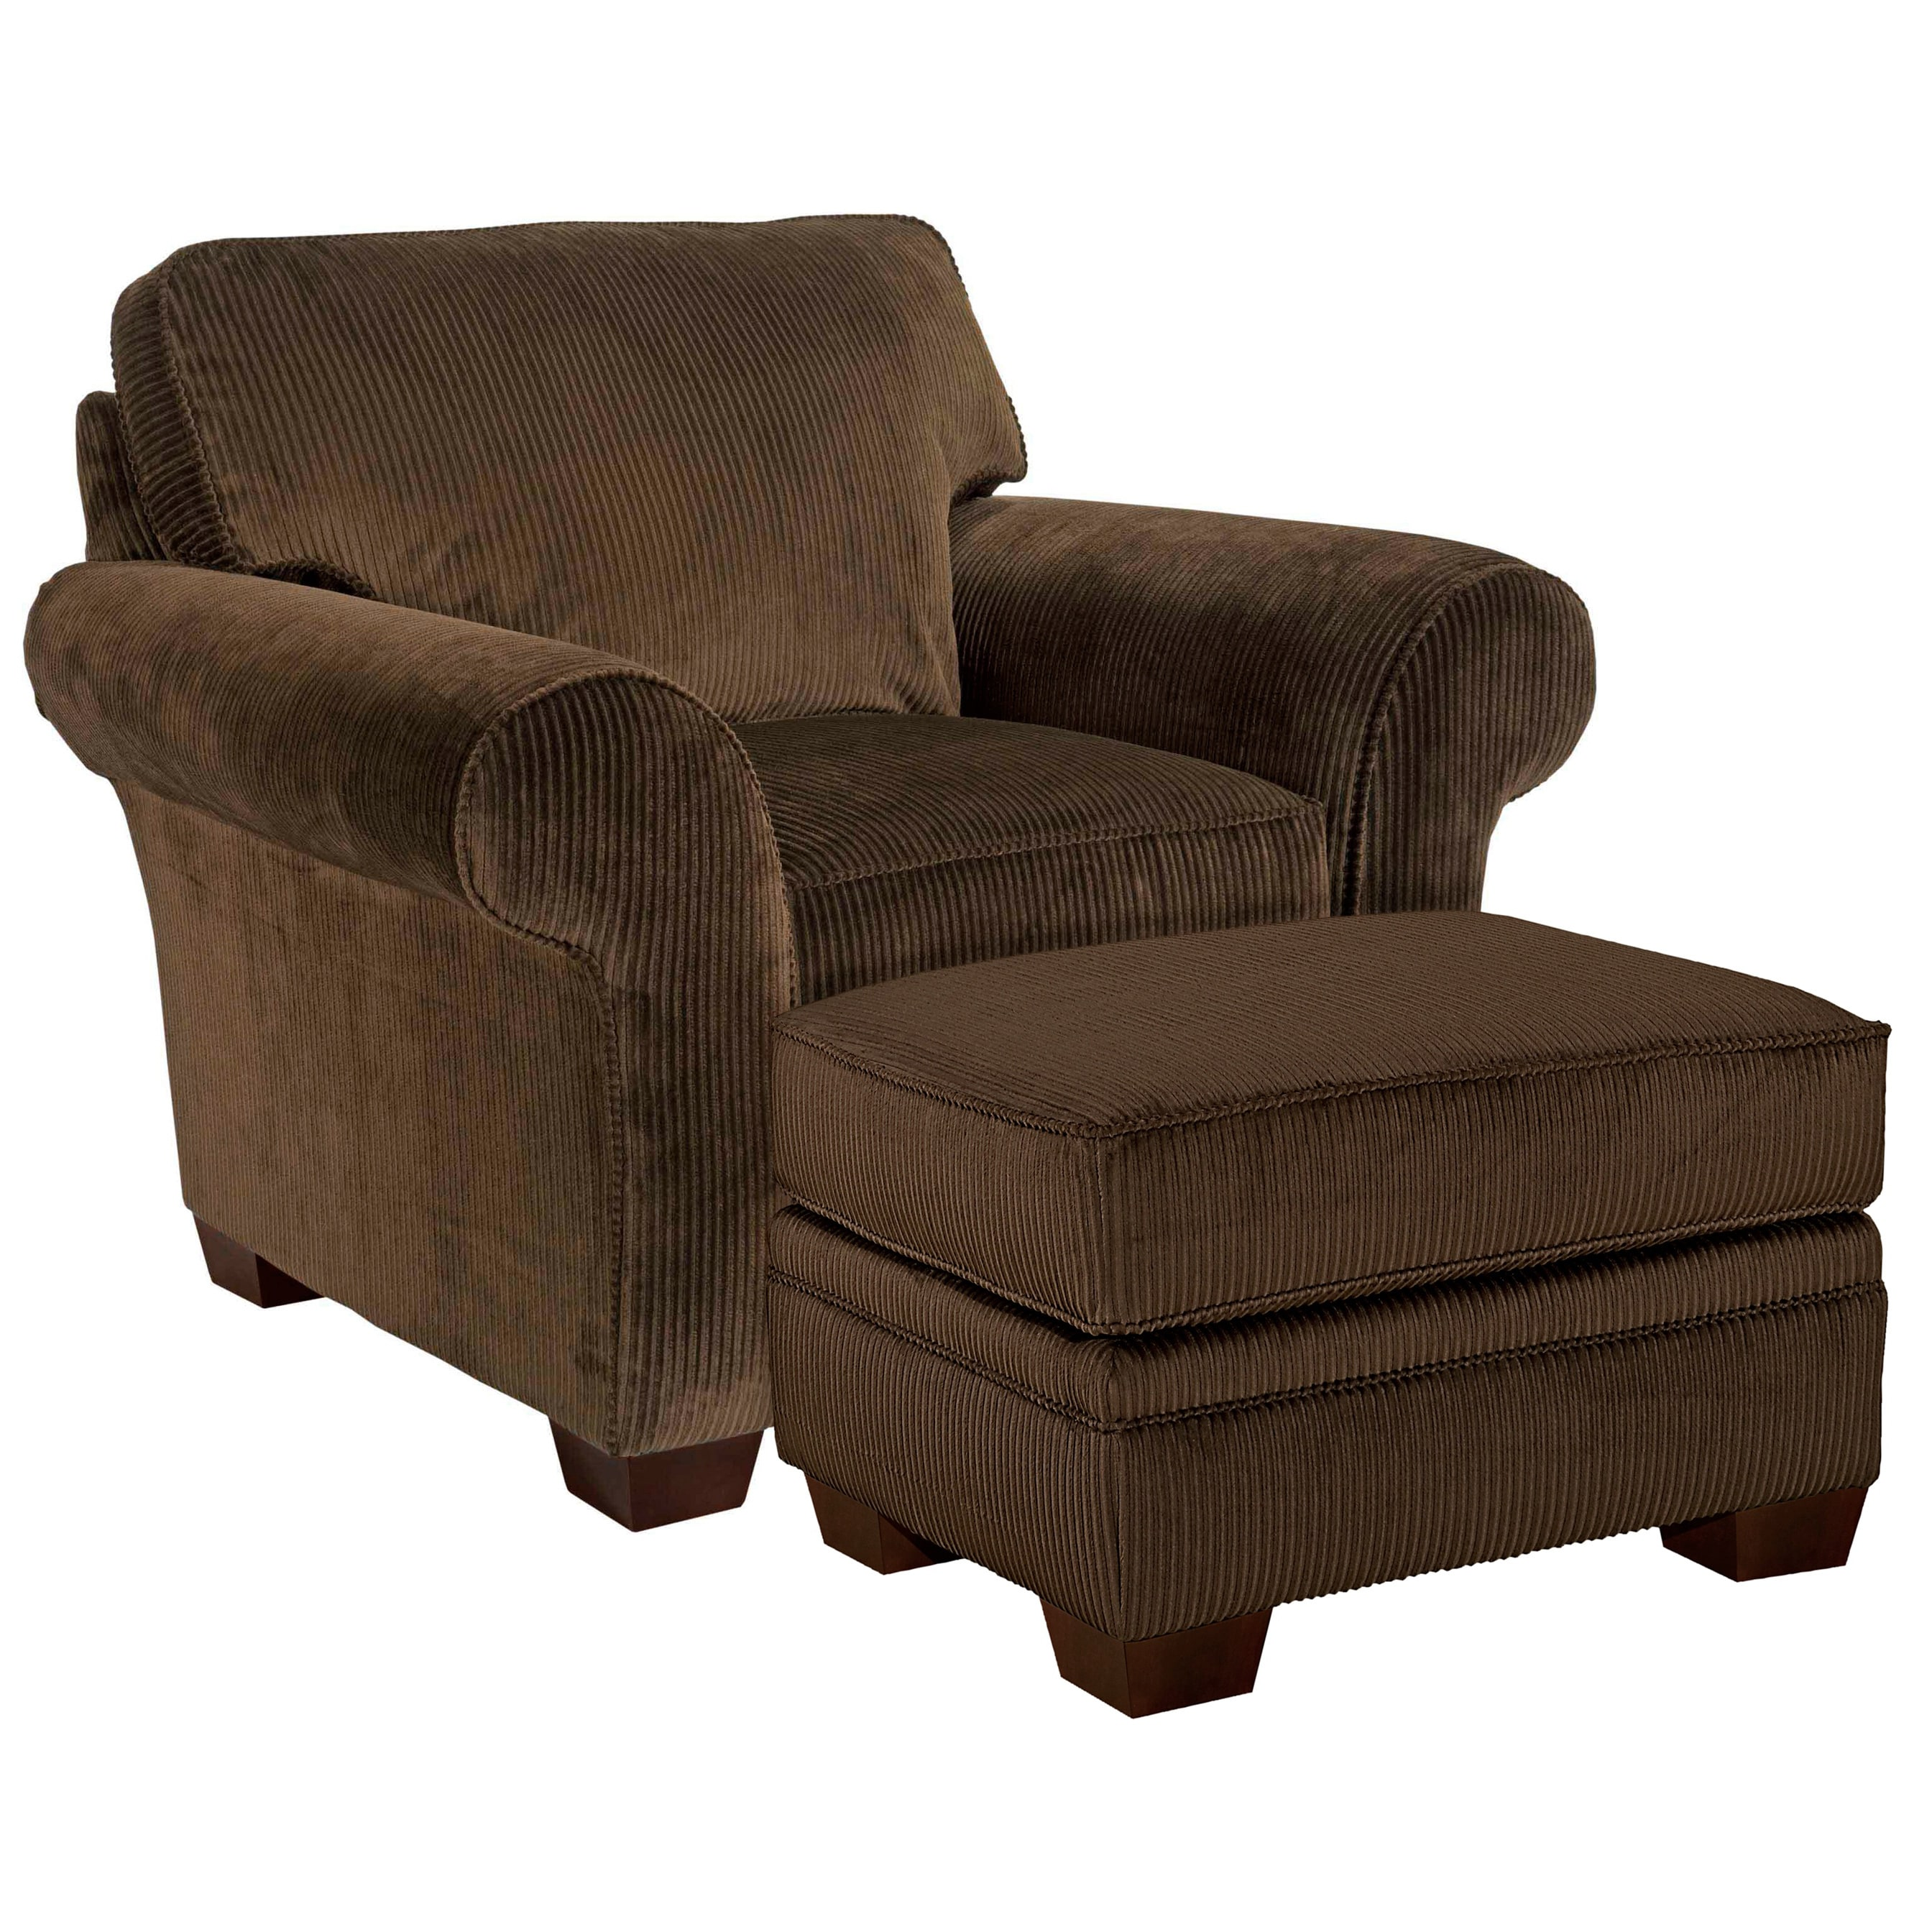 Broyhill Zoey Dark Chocolate Corduroy Chair Ottoman Set